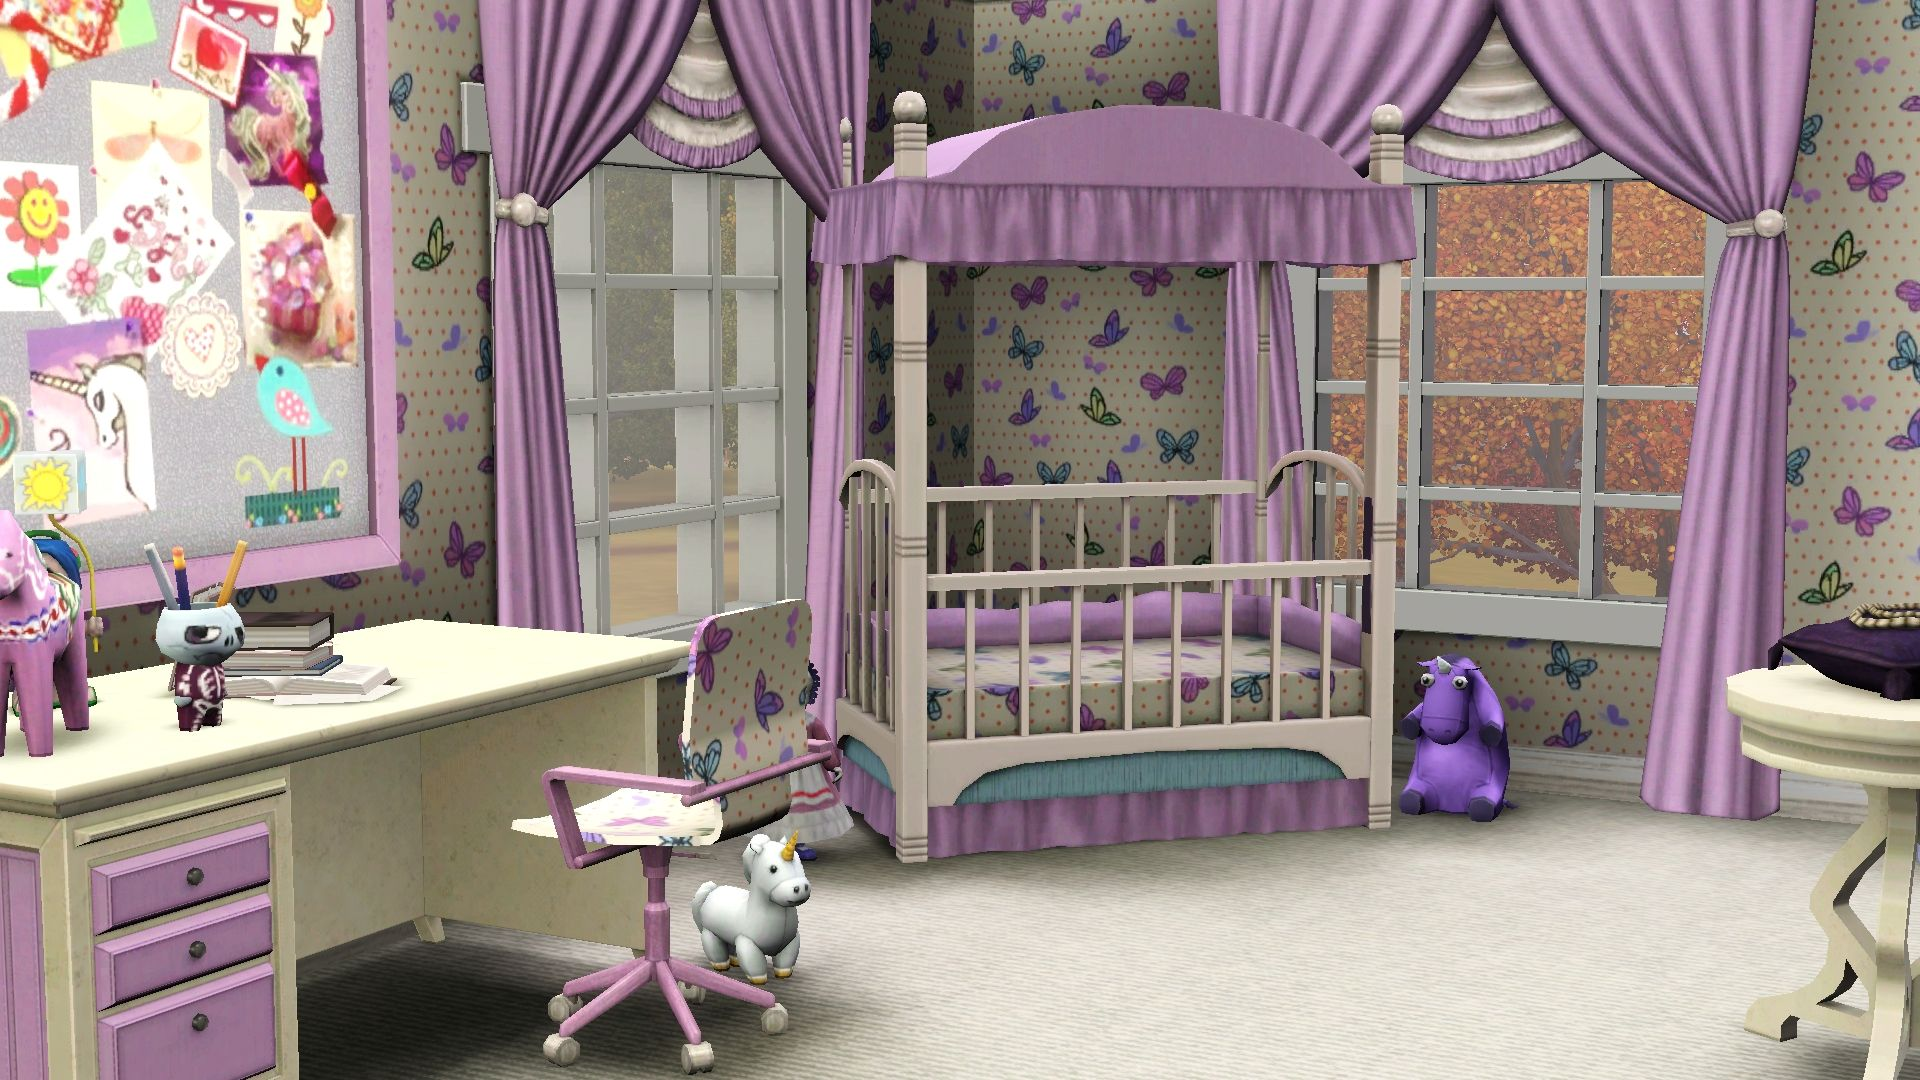 Bedroom Designs Sims 3 screenshot the sims 3 - cute pink baby room / for more daily sims